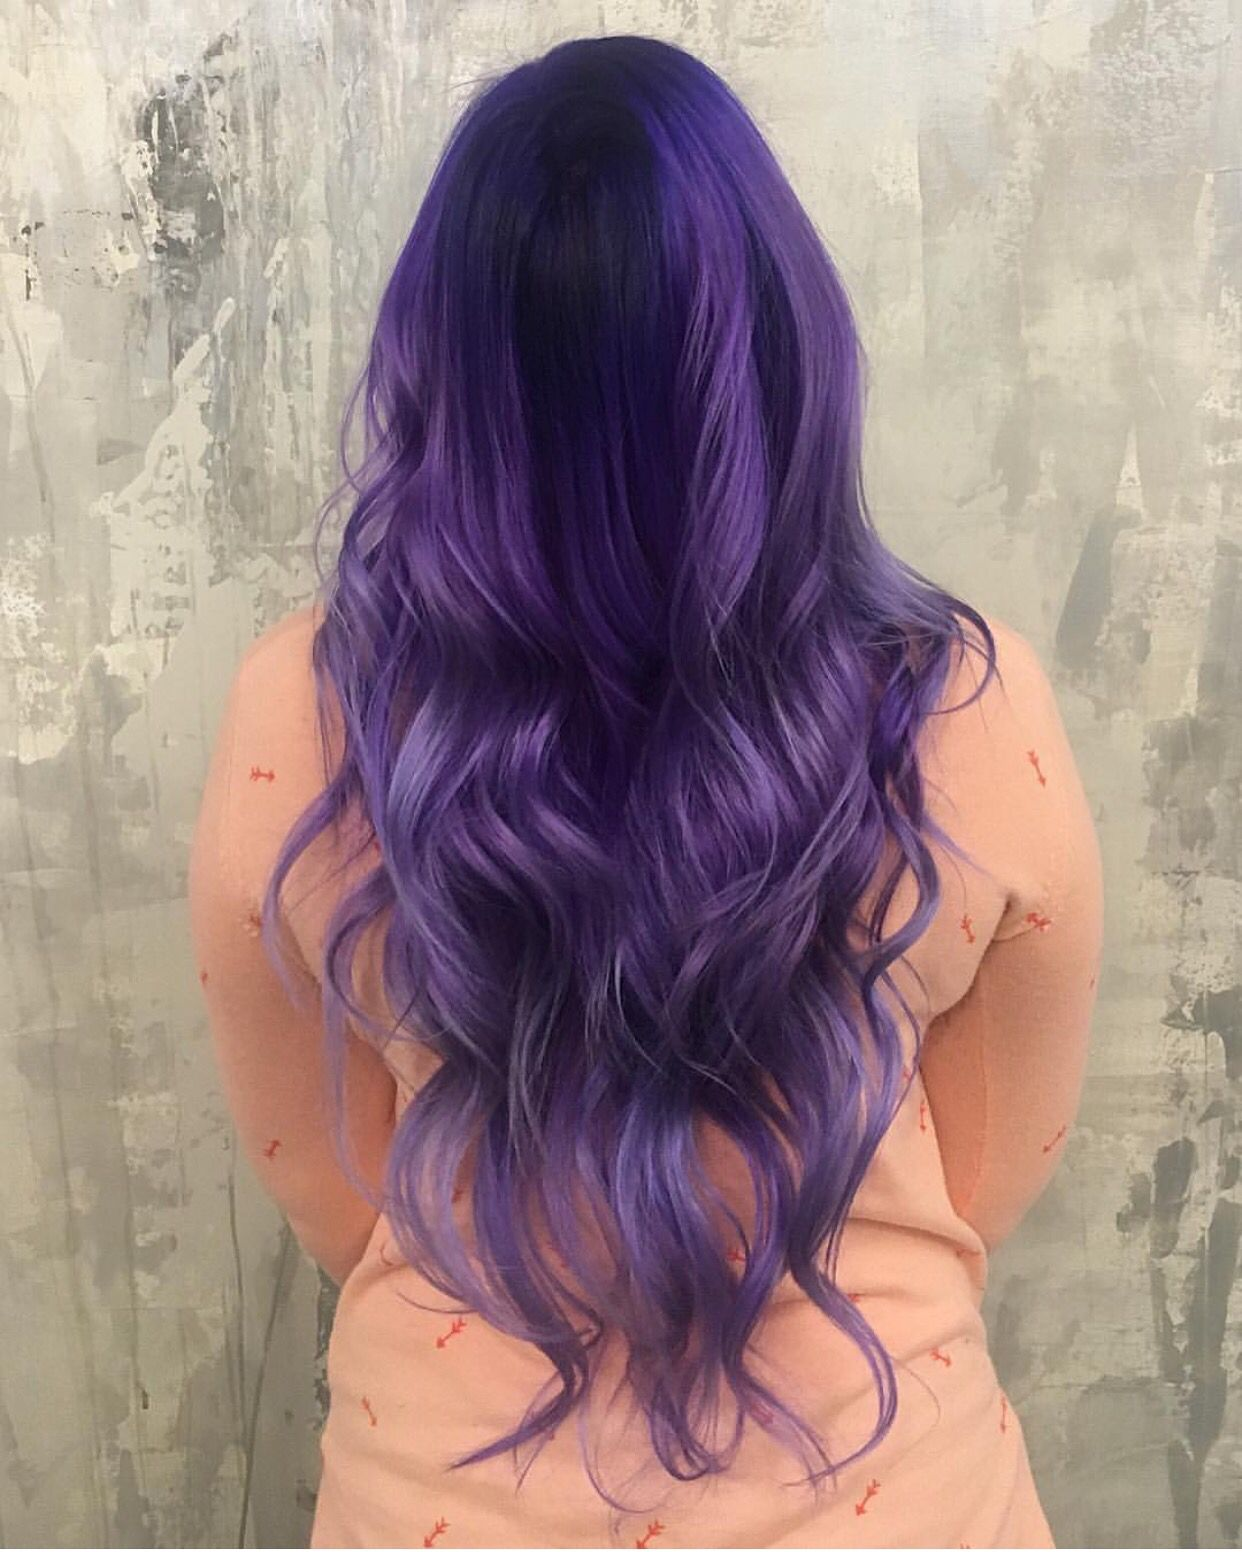 Art color hair - Long Flowing Hair Decorated With A Purple Color Melt By Breanna_anythingbutbasic Hotonbeauty Com Purple